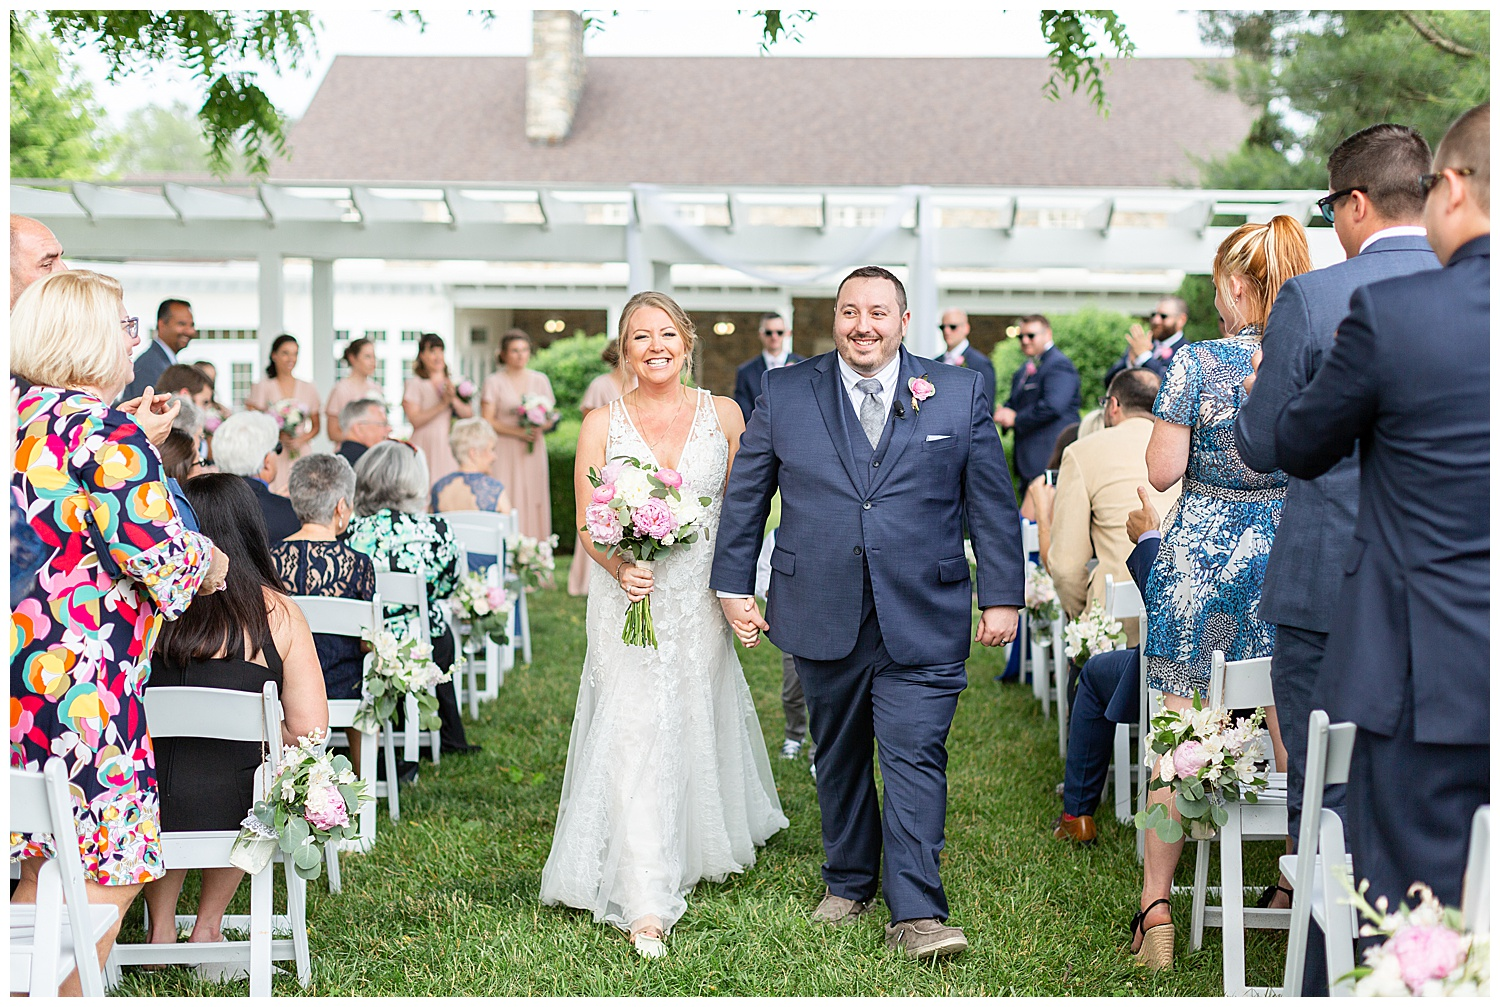 stone-manor-country-club-wedding-emily-belson-photography-77.jpg